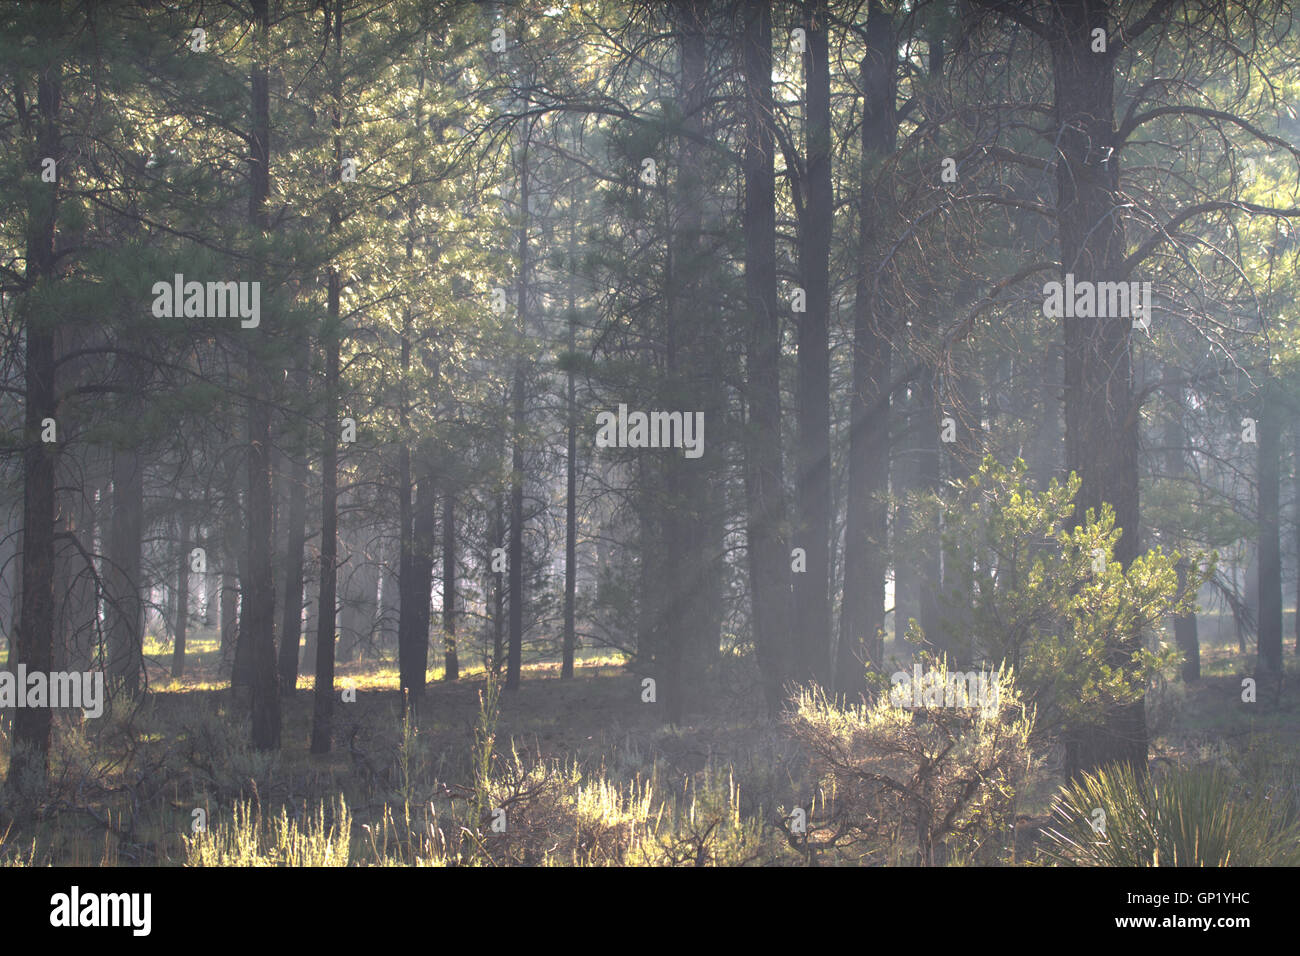 Smog from distant forest fire in Arizona Kaibab Forest near the Grand Canyon.USA - Stock Image